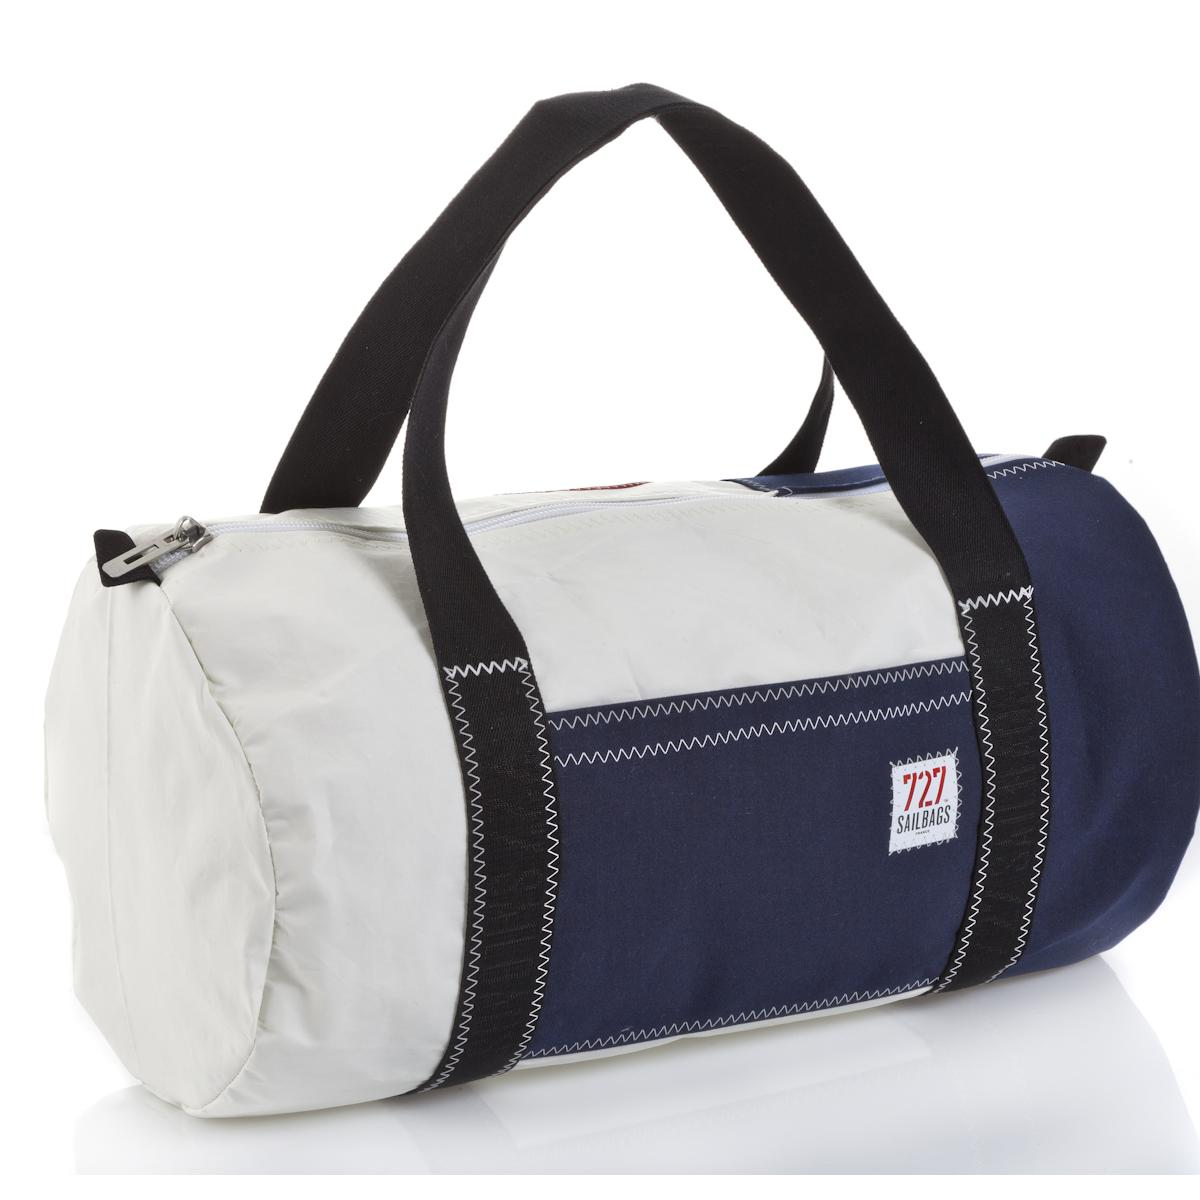 Onshore Tasche Dacron Hit Blue Navy, No 8 Red, Rückseite